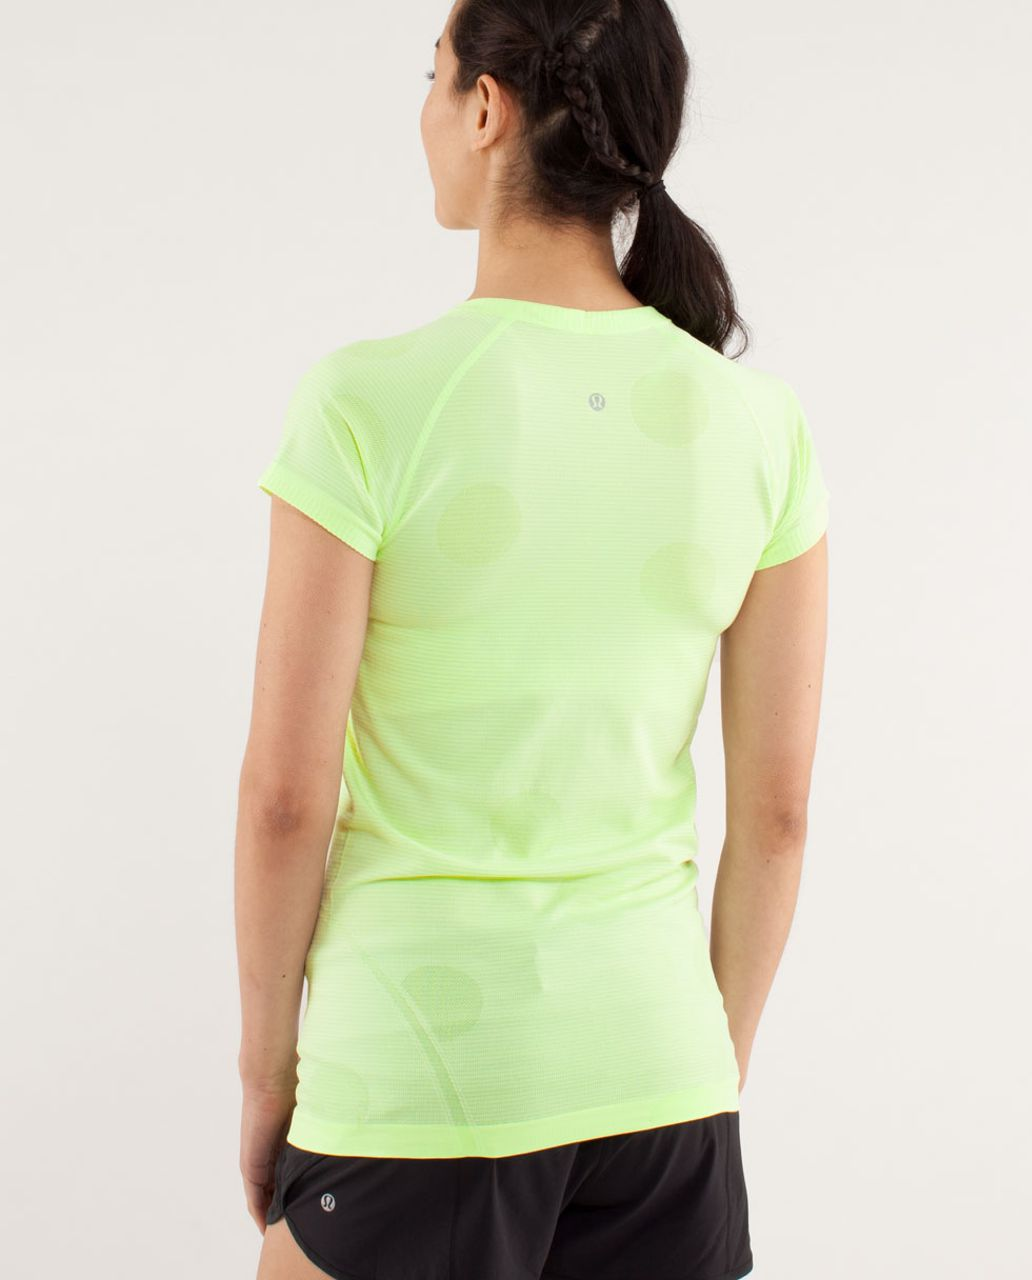 Lululemon Run:  Swiftly Tech Short Sleeve - Faded Zap